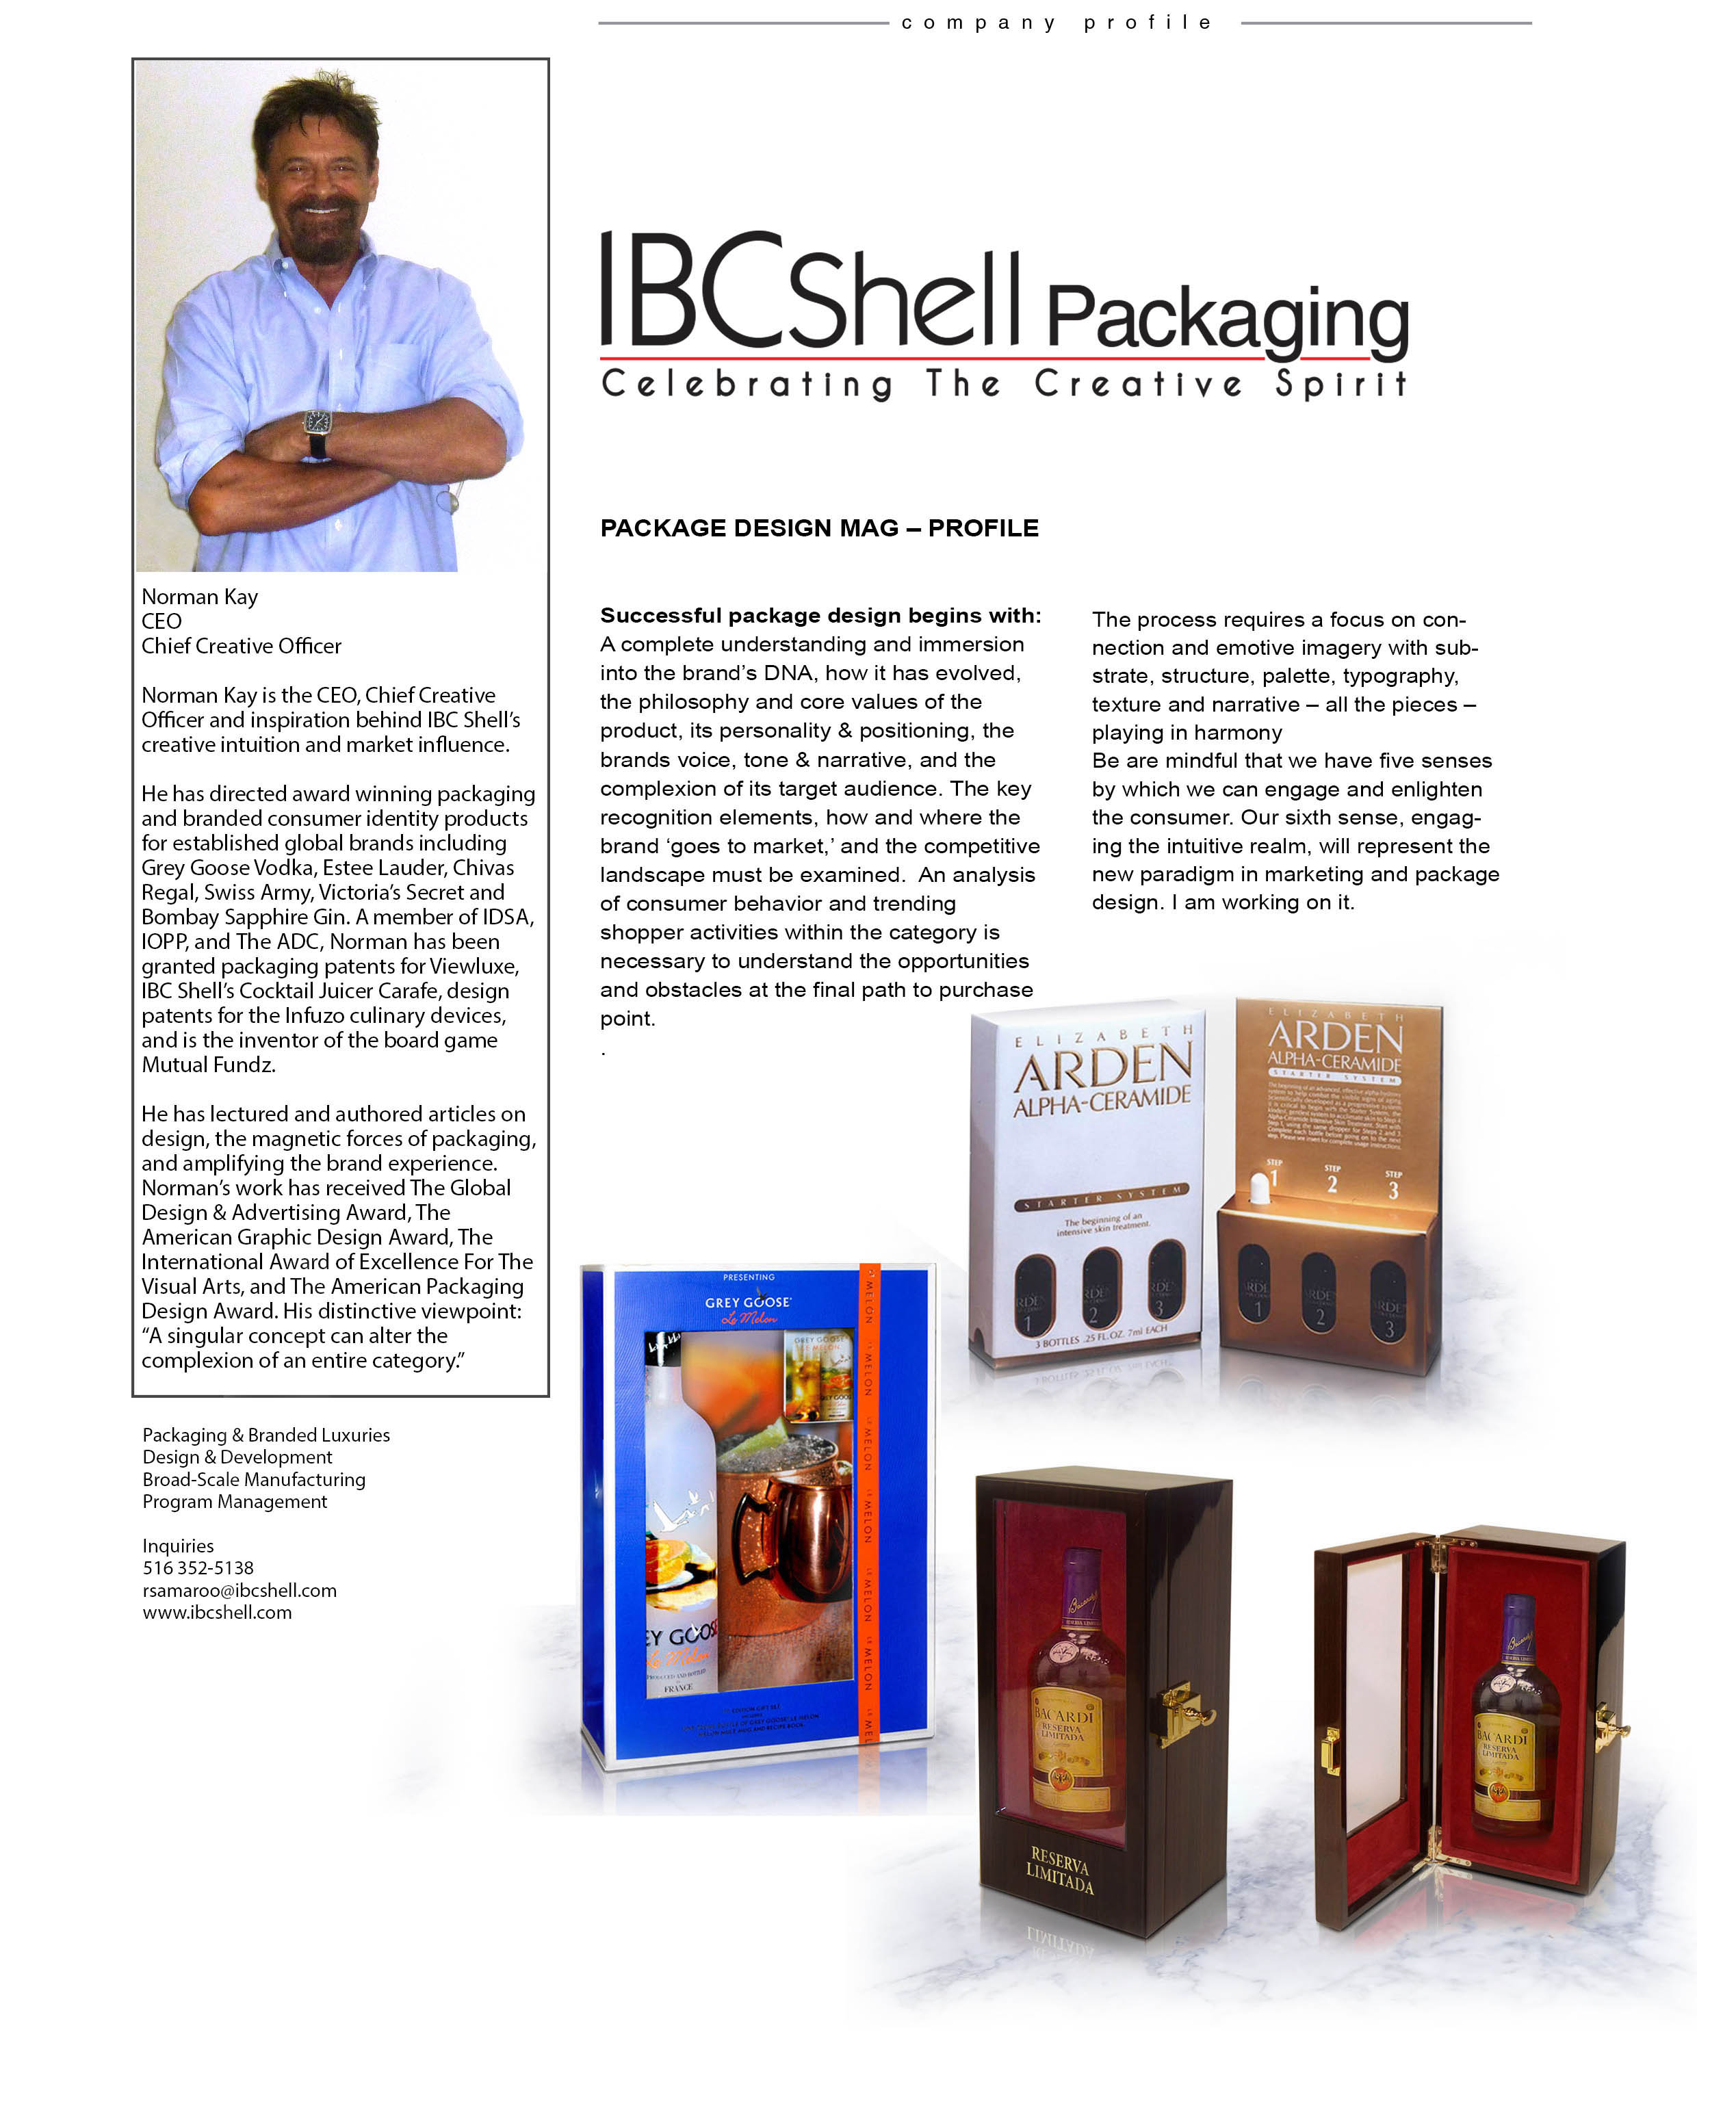 PACKAGING DESIGN PUBLICATION 300DPI IMAGES7-page 1